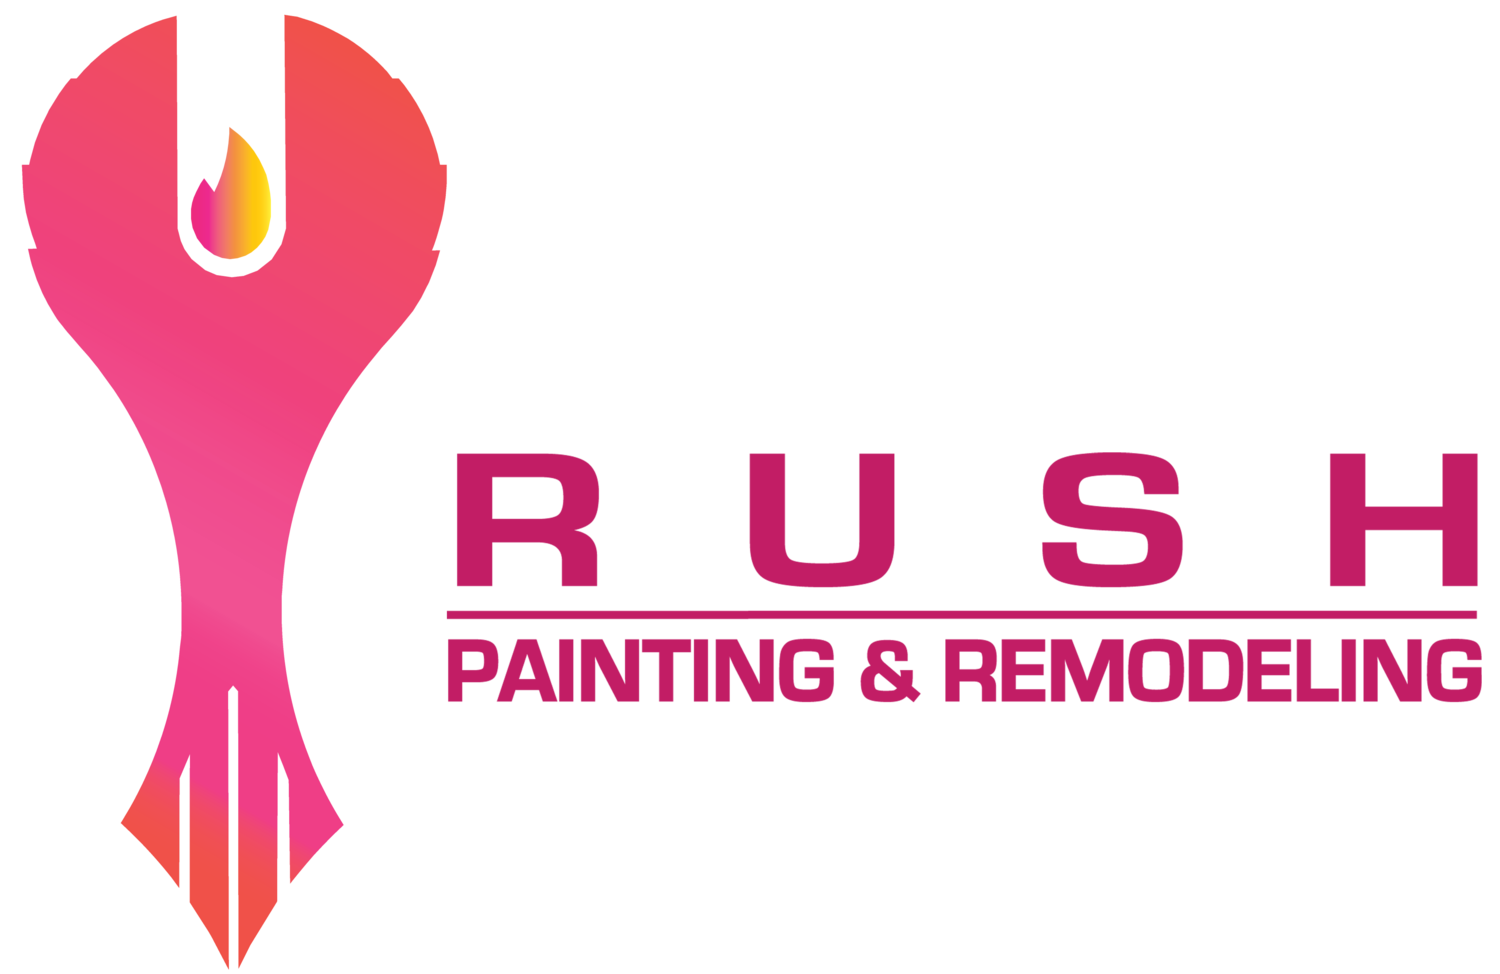 Rush Painting, Remodeling and Home Services: Westchester, New York City, Rockland County